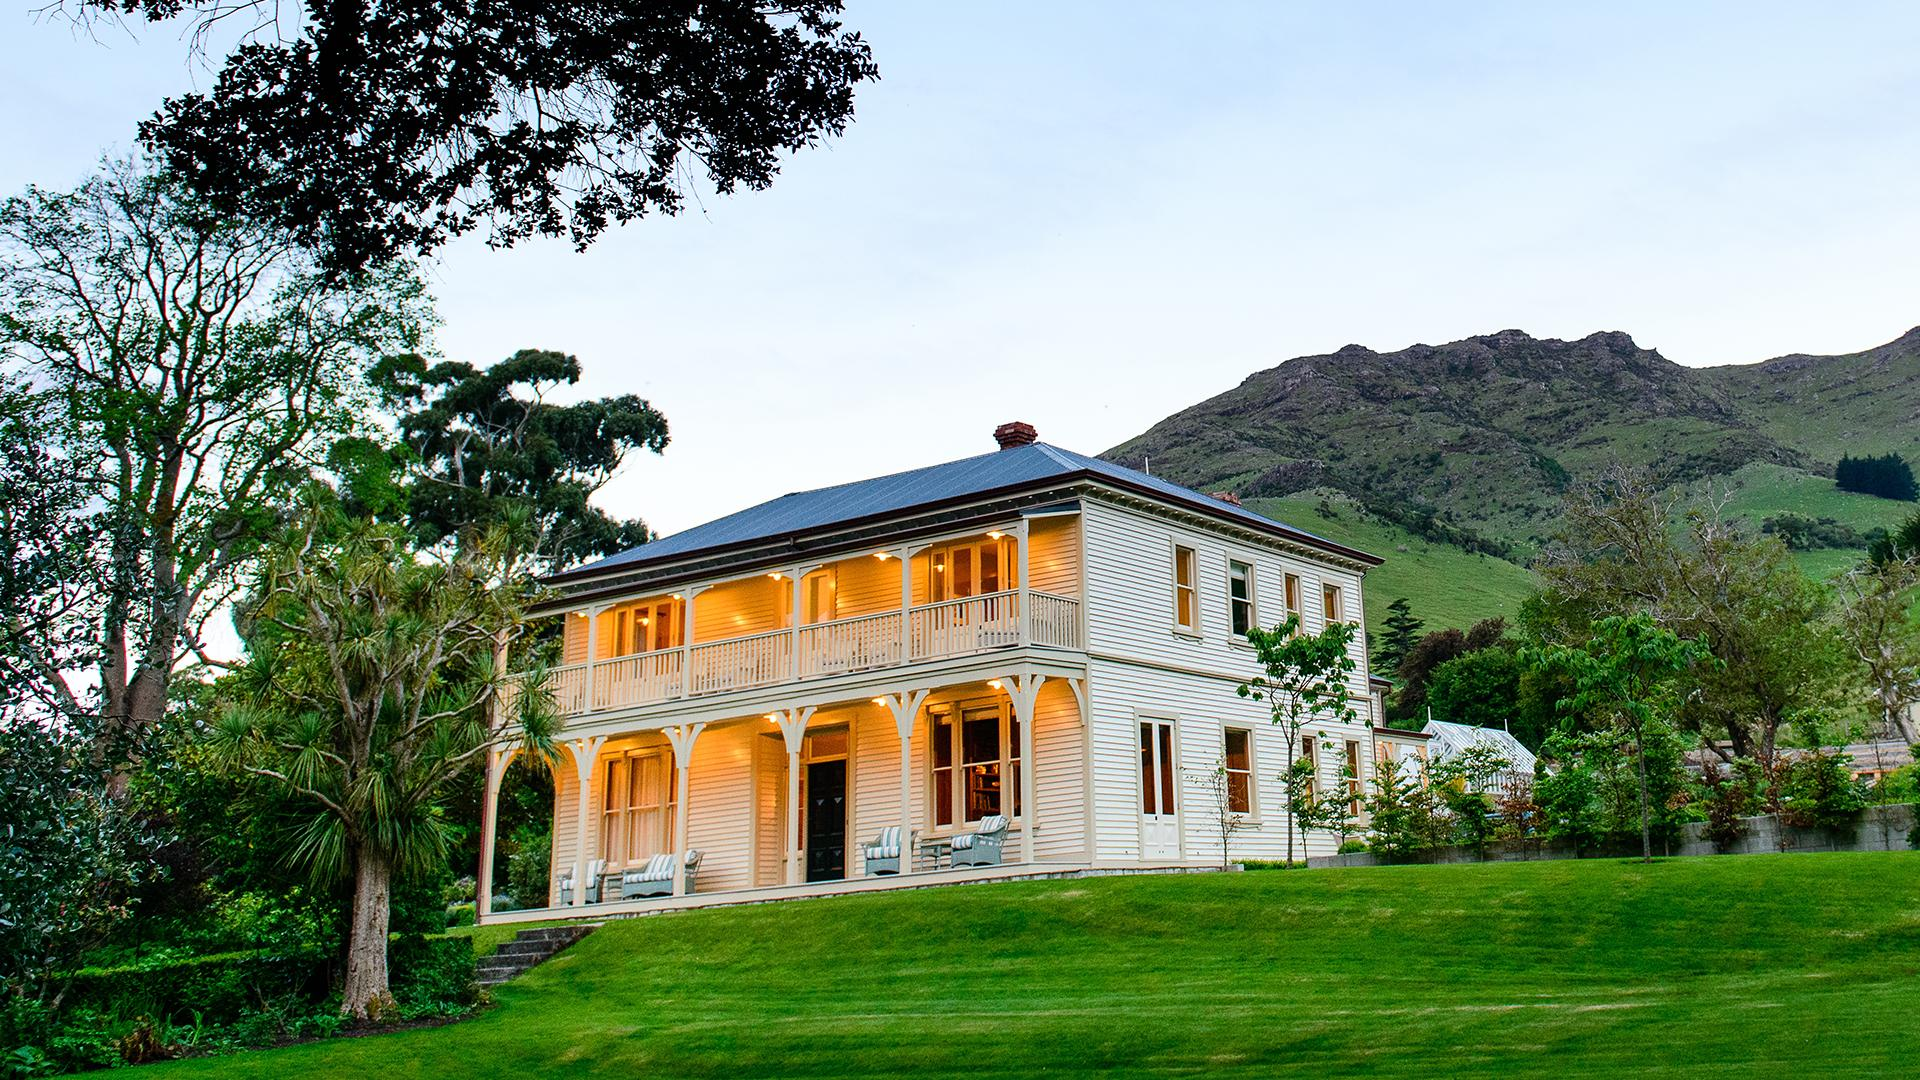 The Homestead image 1 at Annandale by , , New Zealand